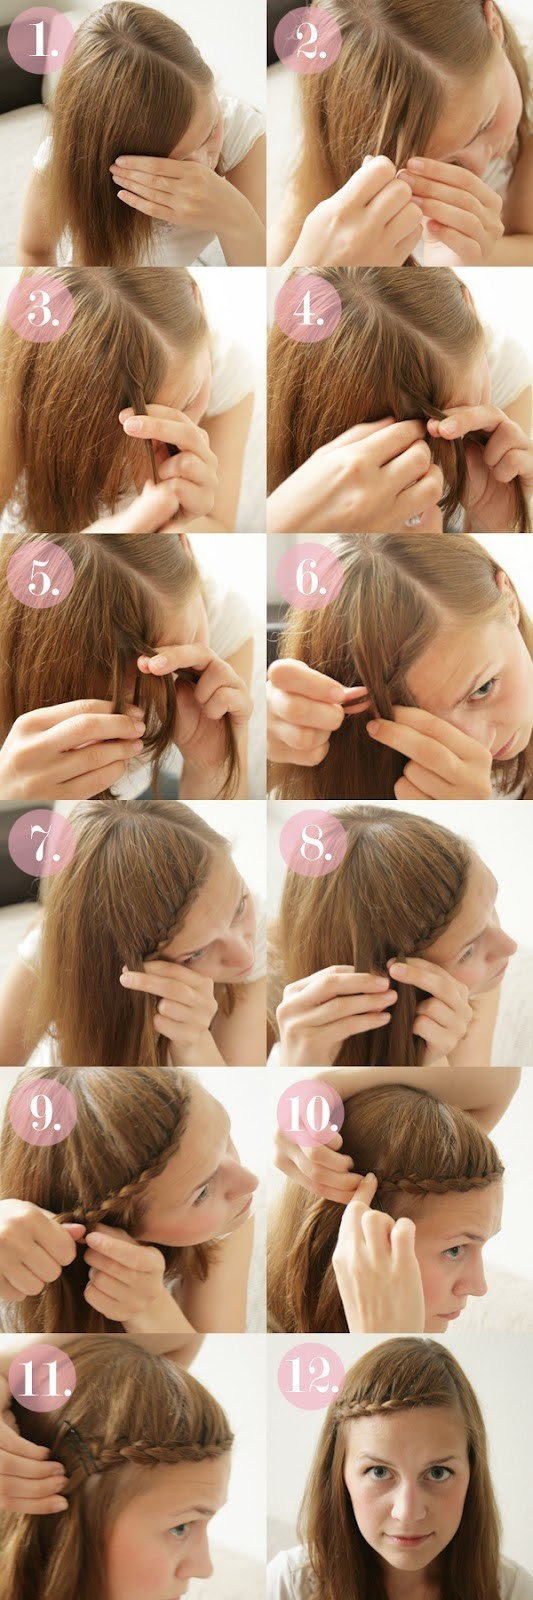 15 Braided Bangs Tutorials: Cute, Easy Hairstyles - Pretty Designs